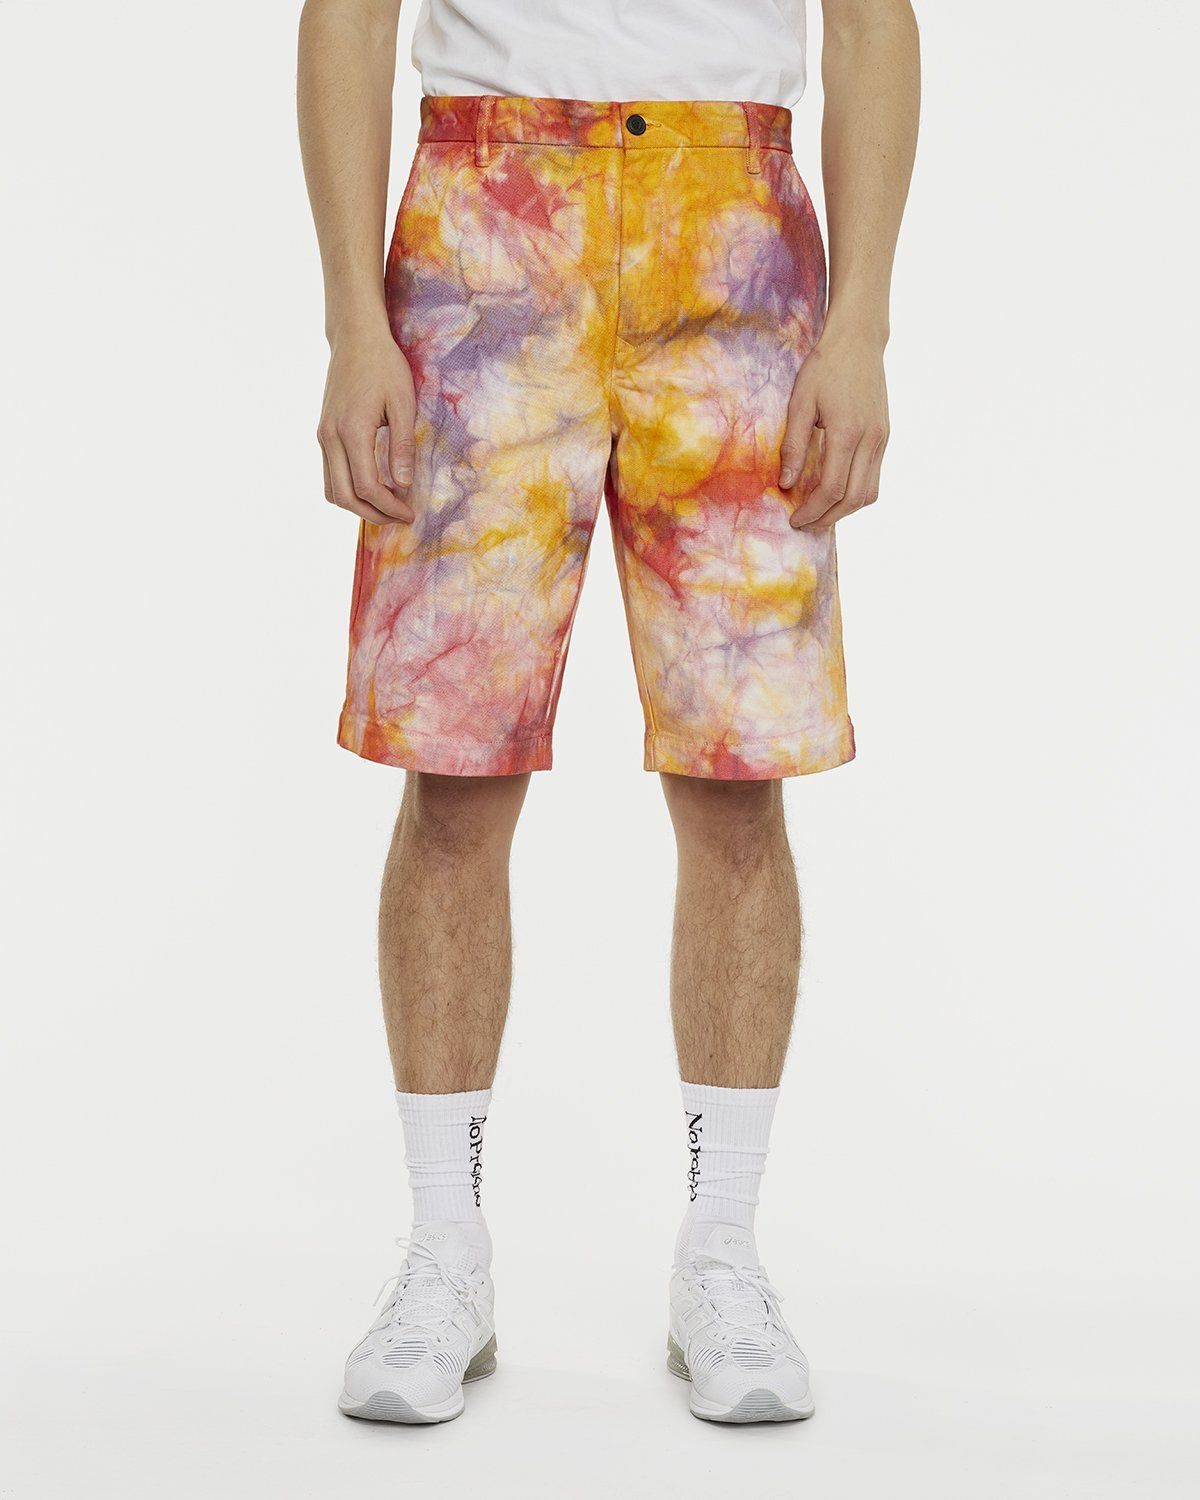 Aries - Tie Dye Chino Shorts Multicolor - Image 3